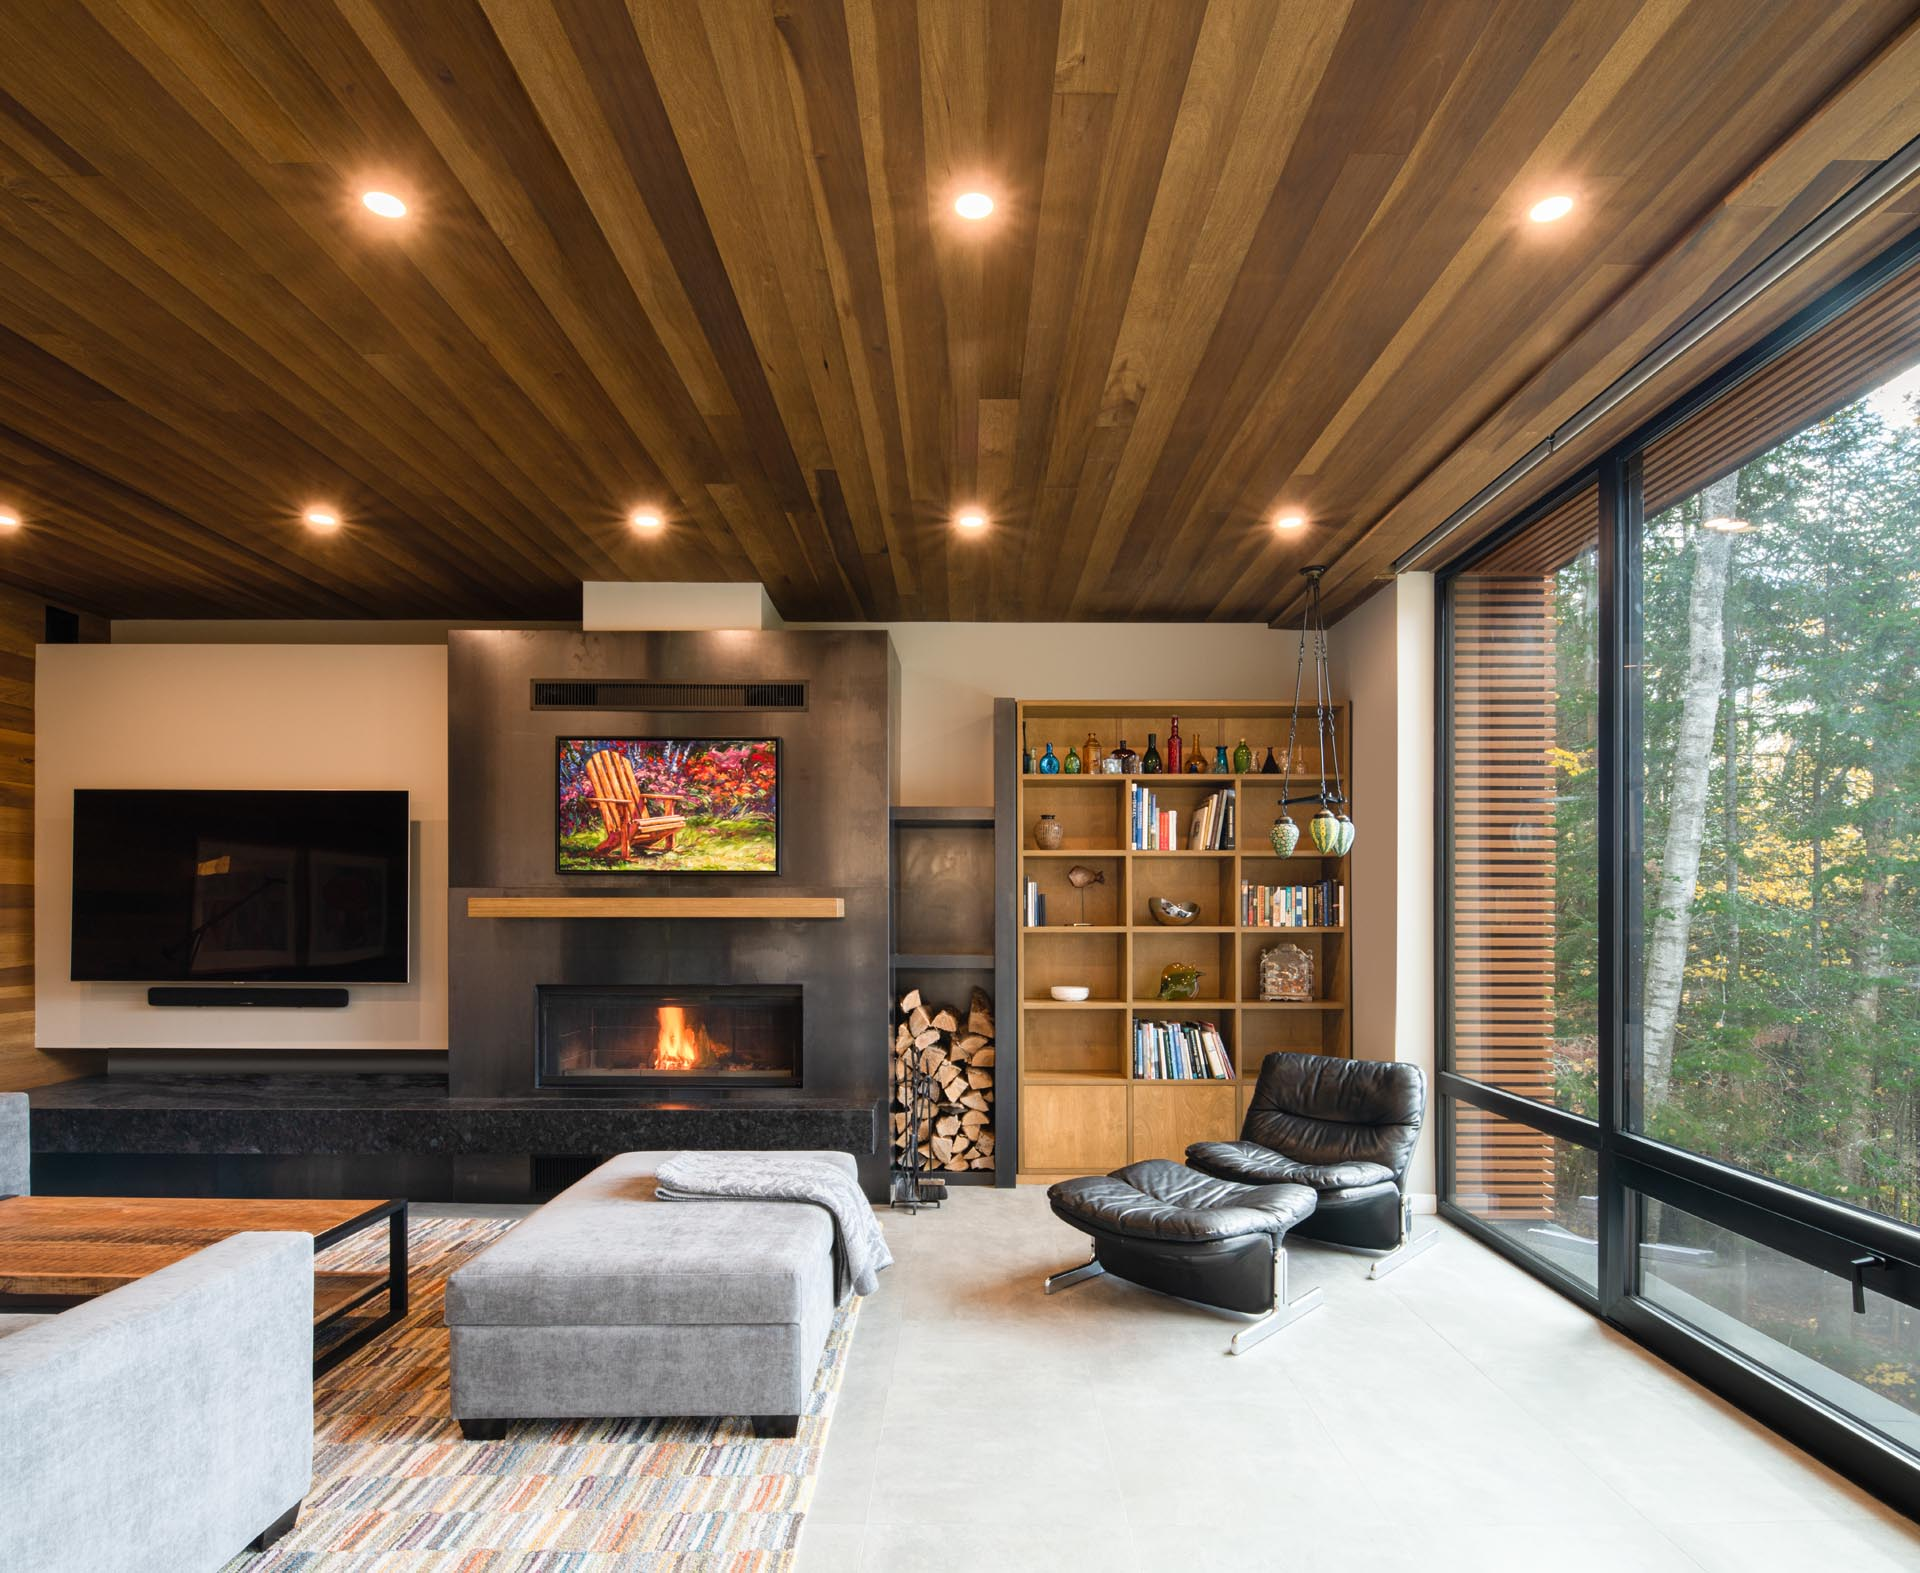 Inside his prefab home, wood has been used to create a space that's warm and welcoming. In the living room, there's a fireplace, a dedicated area for the television, and a bookcase.